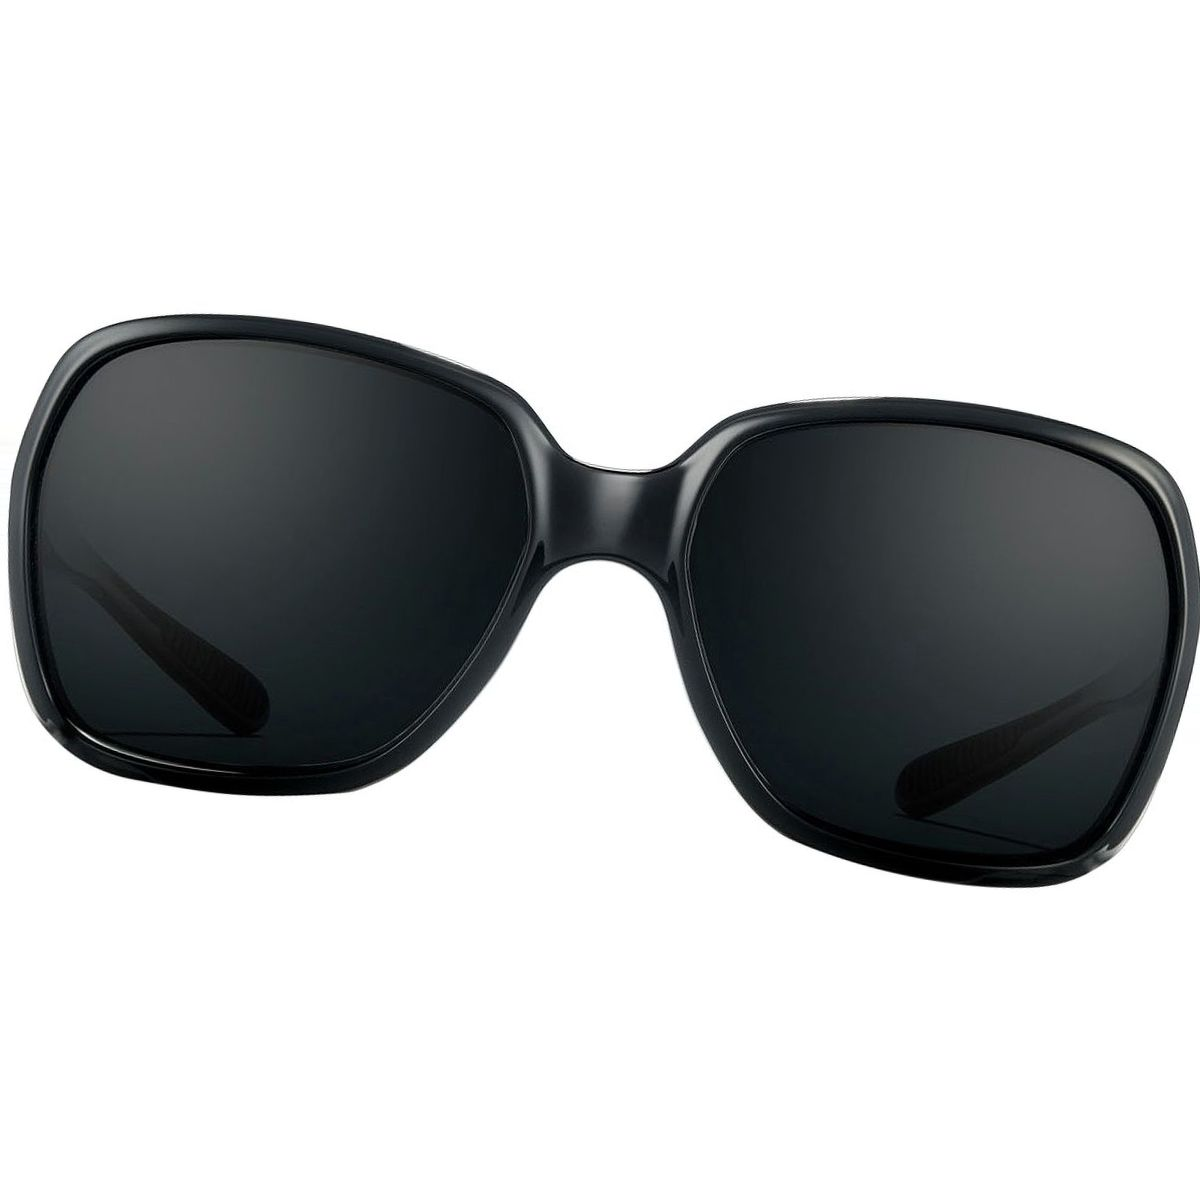 Roka Monaco Polarized Sunglasses - Women's